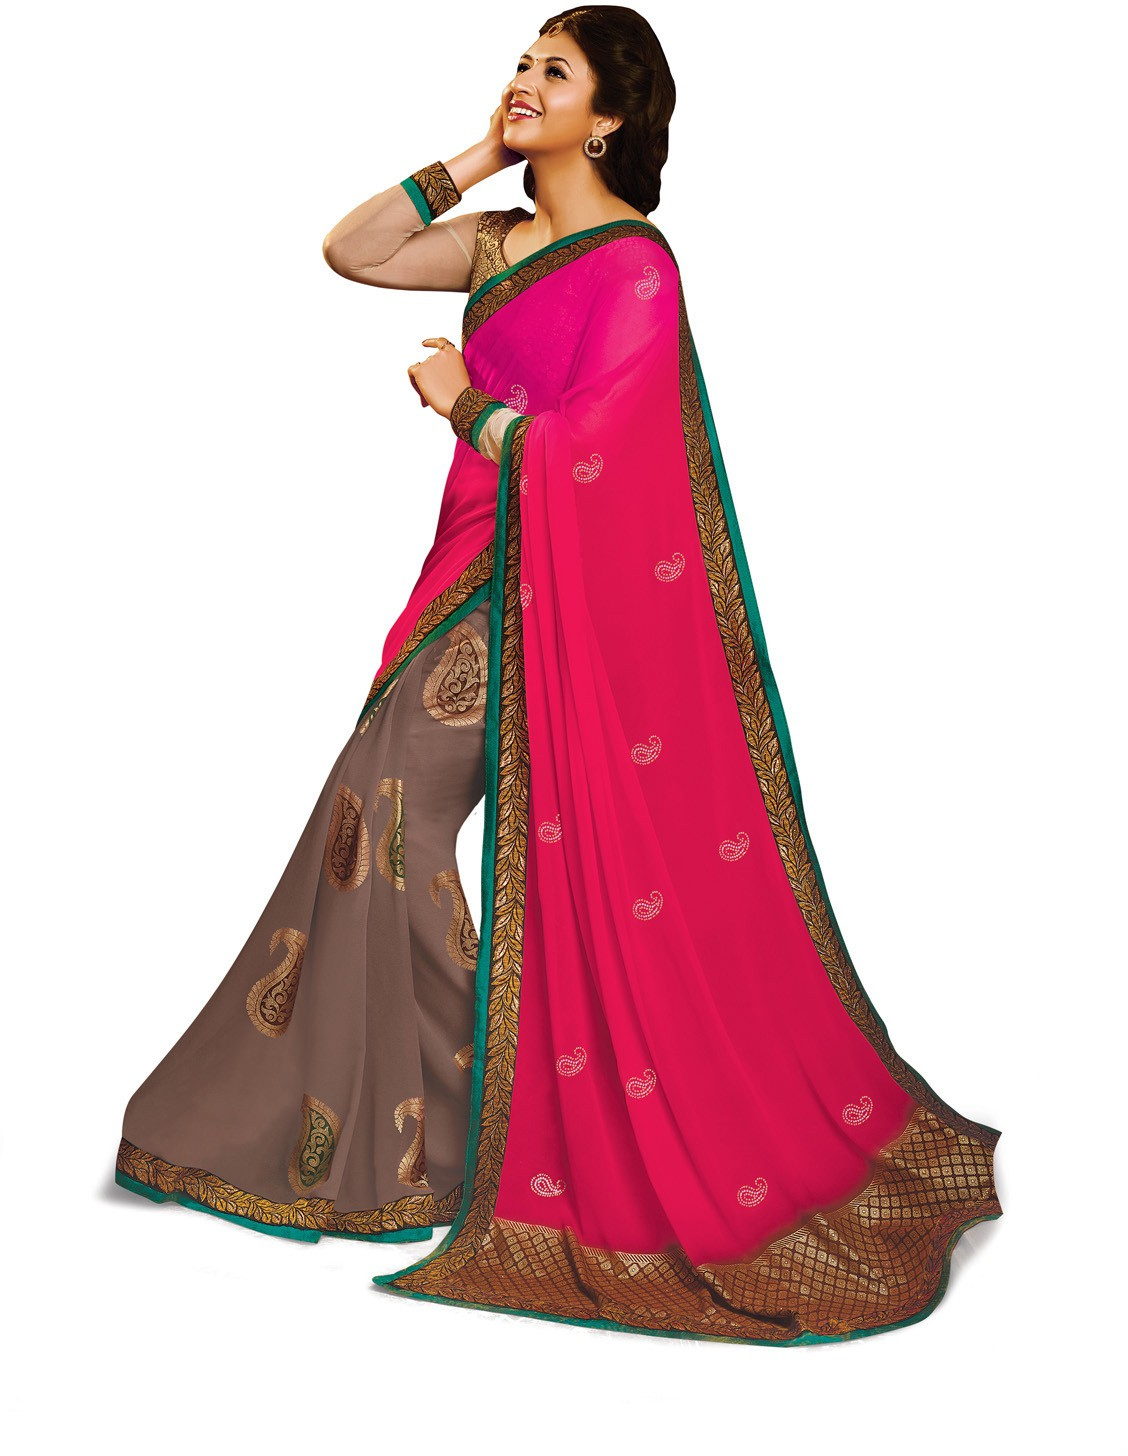 Indianbeauty Self Design, Printed Bollywood Pure Georgette Saree(Pink, Grey)